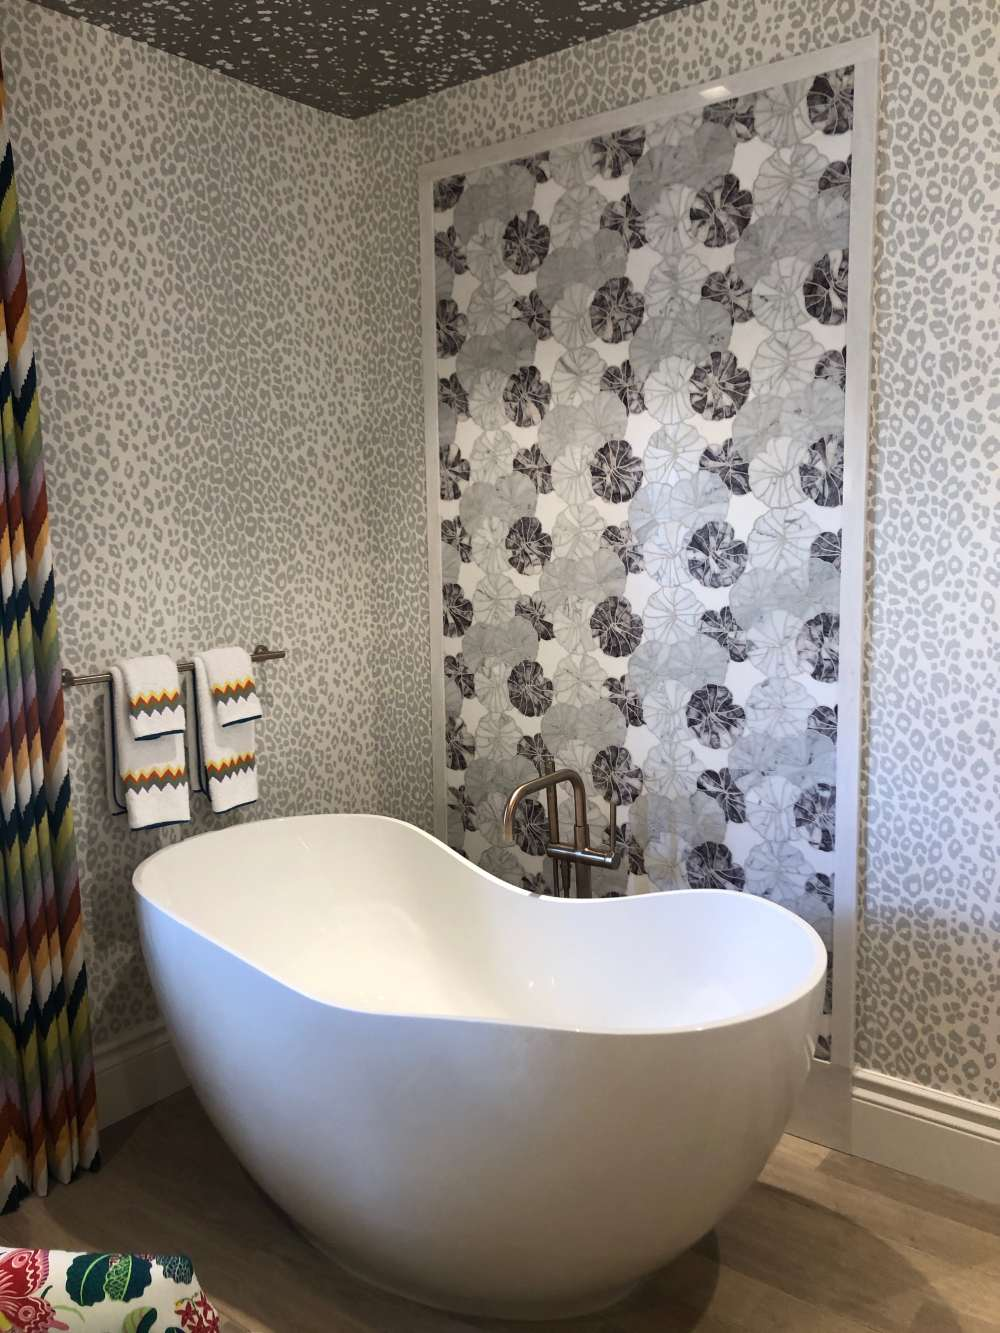 Porcelain tiles, especially those with a distinctive pattern, can be a focal feature in a bathroom.